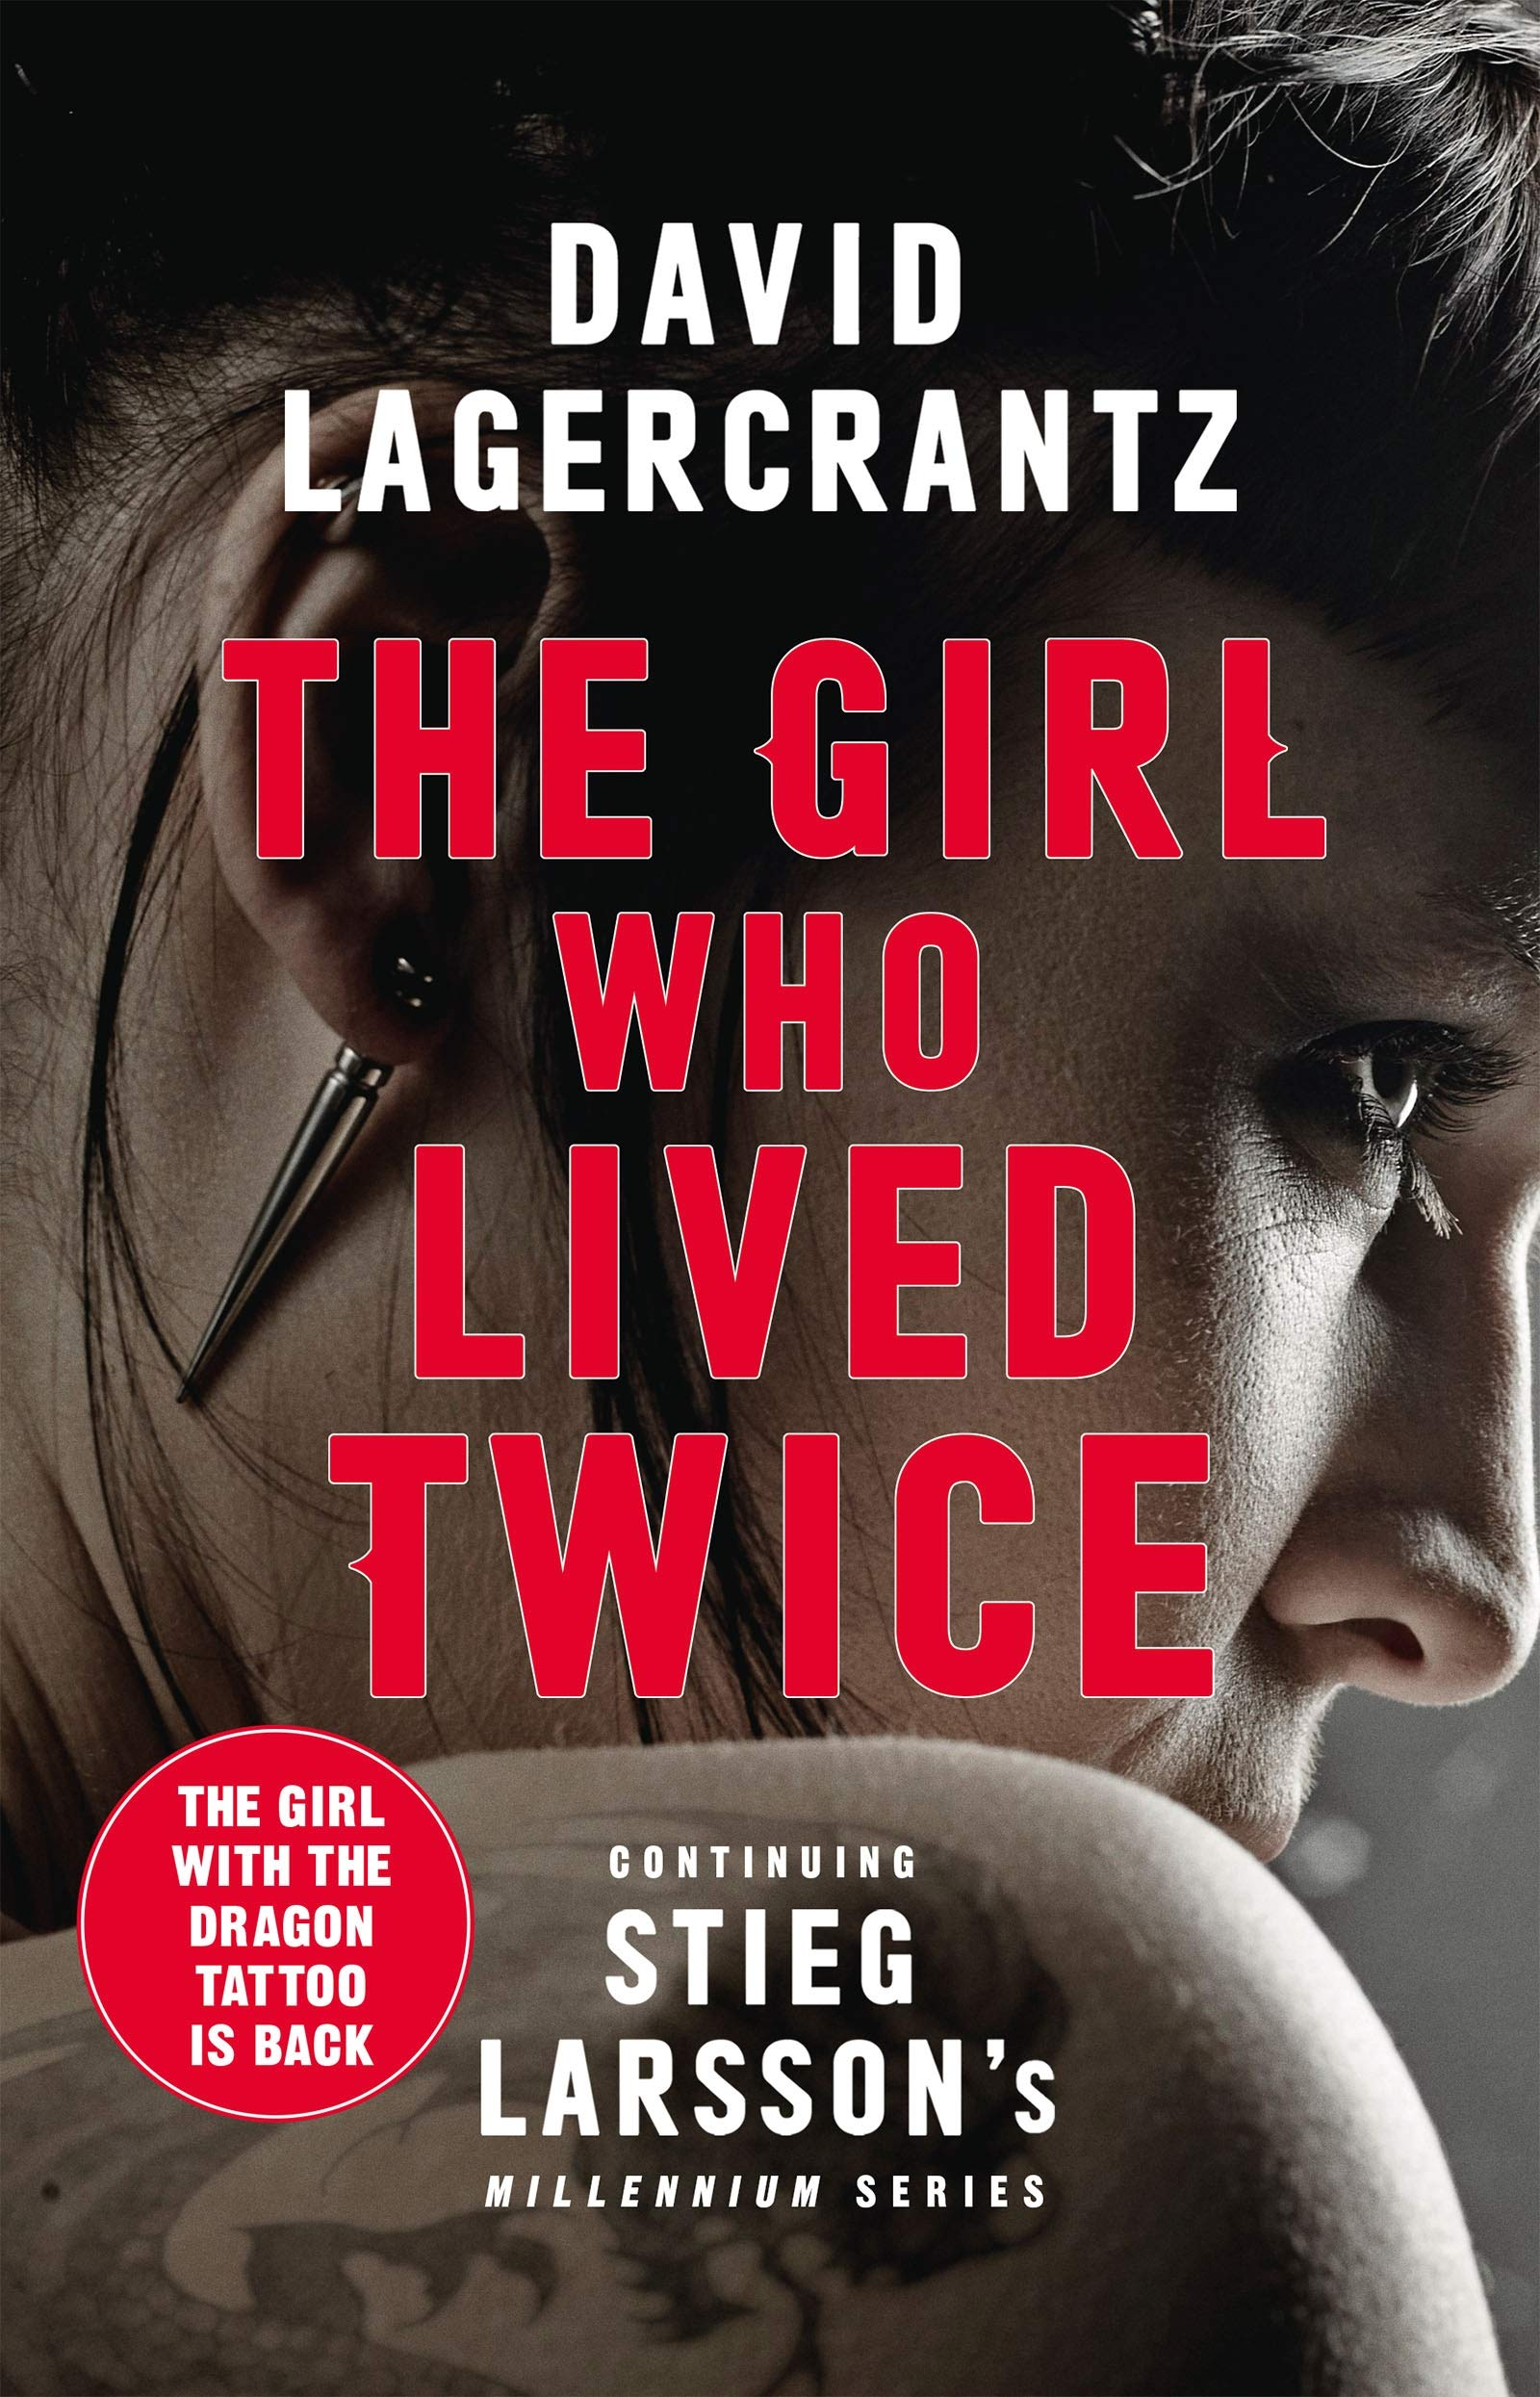 Image for THE GIRL WHO LIVED TWICE Signed First Edition with Red Edges